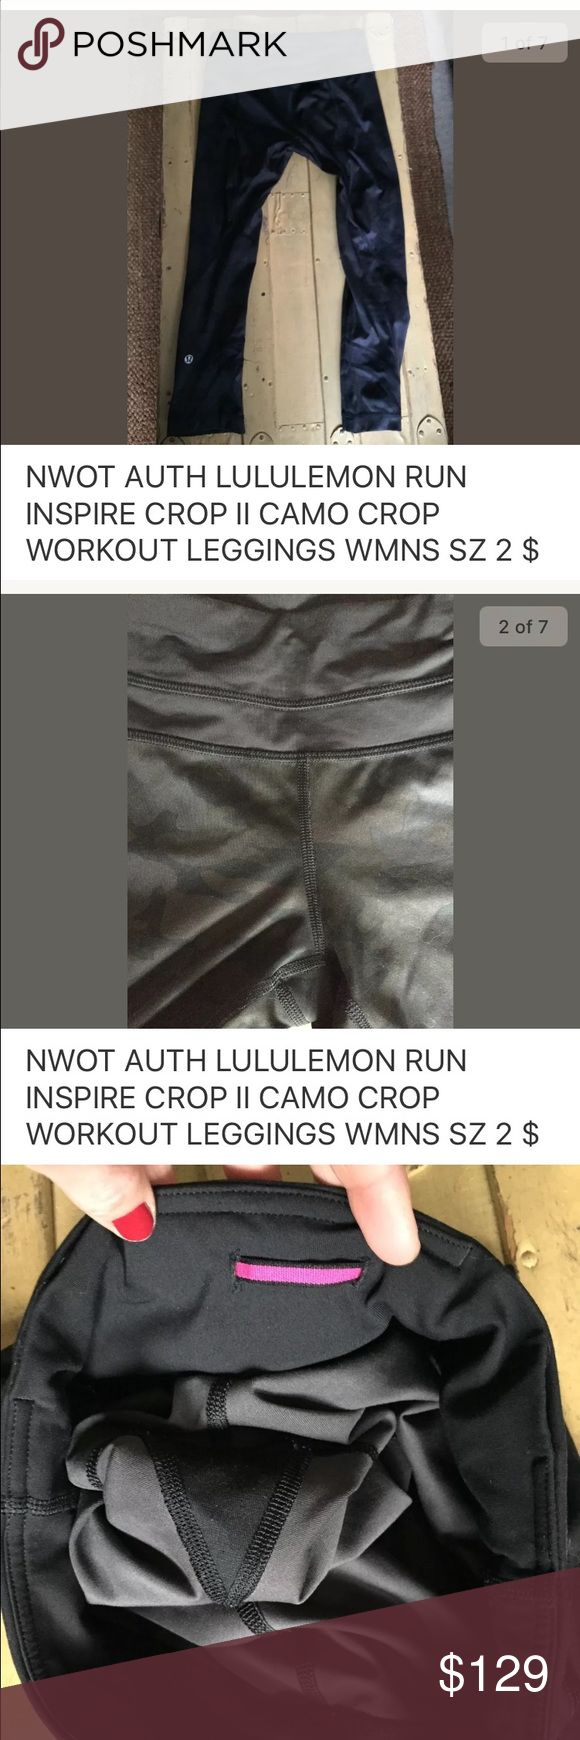 """🚫SOLD🚫NWOT LULULEMON RUN CROP II CAMO LEGGING 2 🚫SOLD🚫NWOT AUTH LULULEMON RUN INSPIRE CROP II CAMO CROP WORKOUT LEGGINGS WMNS SZ 2 SOLD OUT & RARE!!! 100% authentic Lululemon brand Women's size: 2 (regular) Condition: new without tags, store display; see photos for specific detail Style name: """"run inspire crop II"""" Color/pattern: unsure of specific name – it is a black camouflage pattern * convenient zip pocket at back top of pants All items come from a CLEAN, SMOKE FREE HOME lululemon…"""